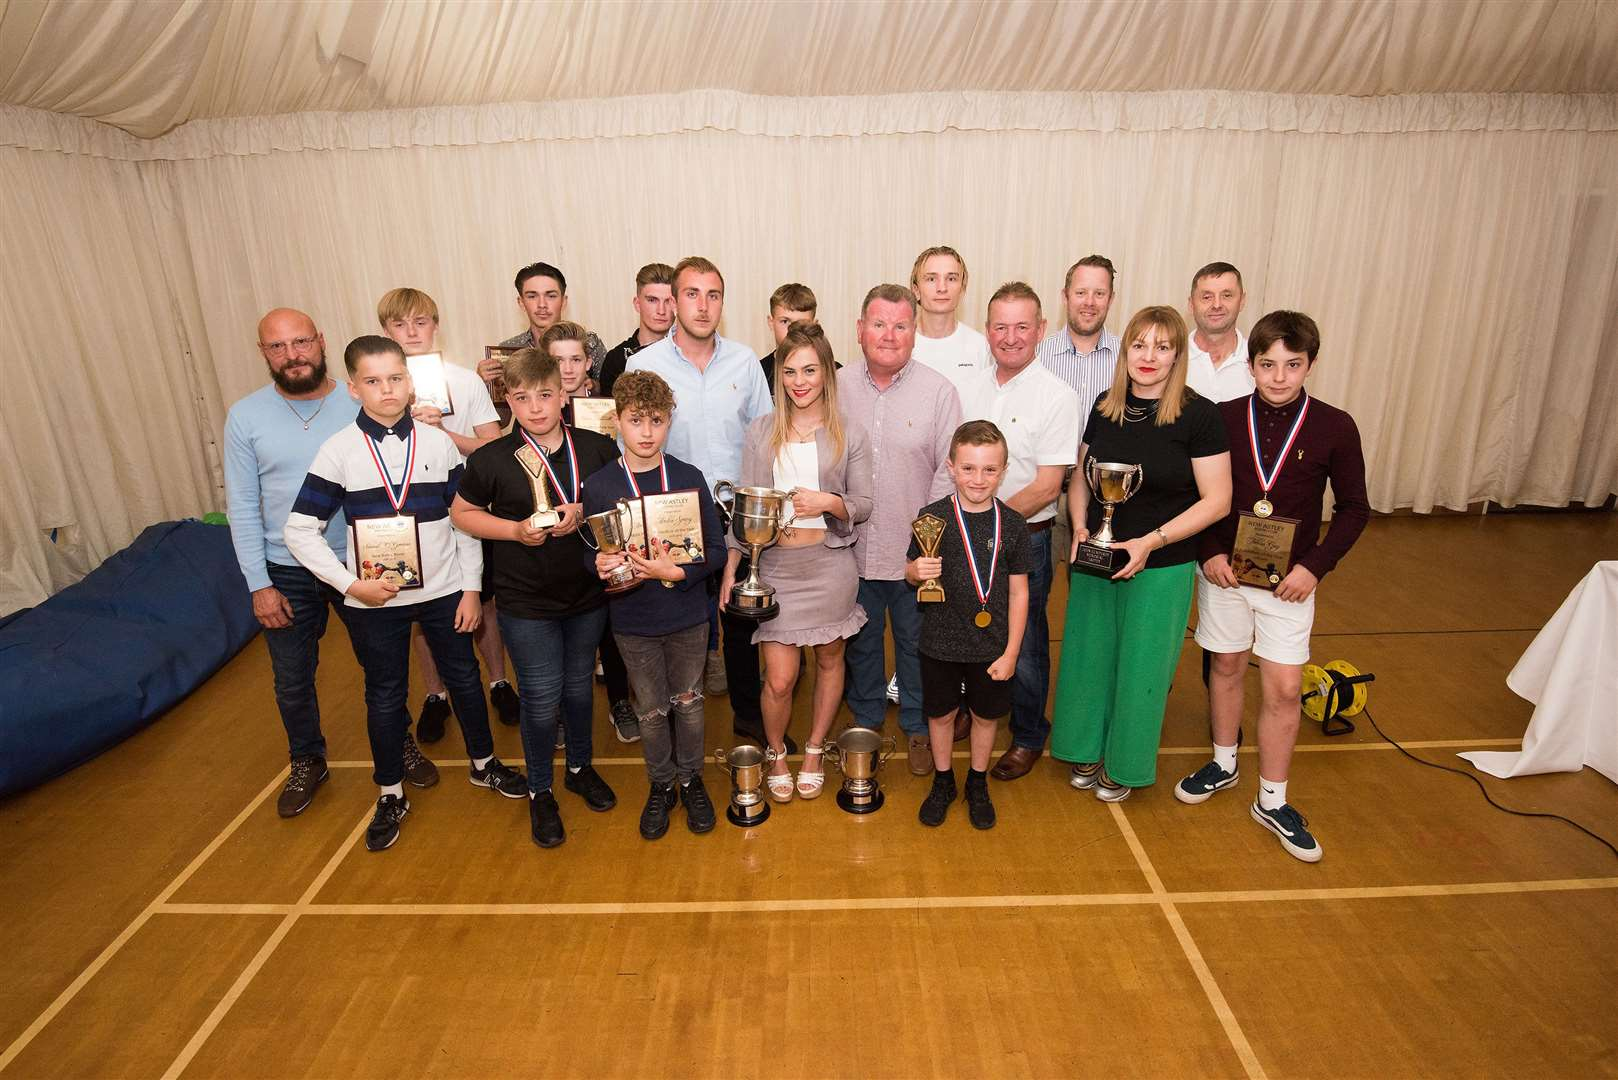 New Astley Boxing Club Awards evening sponsored by Shadwell Stud Picture by Mark Westley. (12941087)